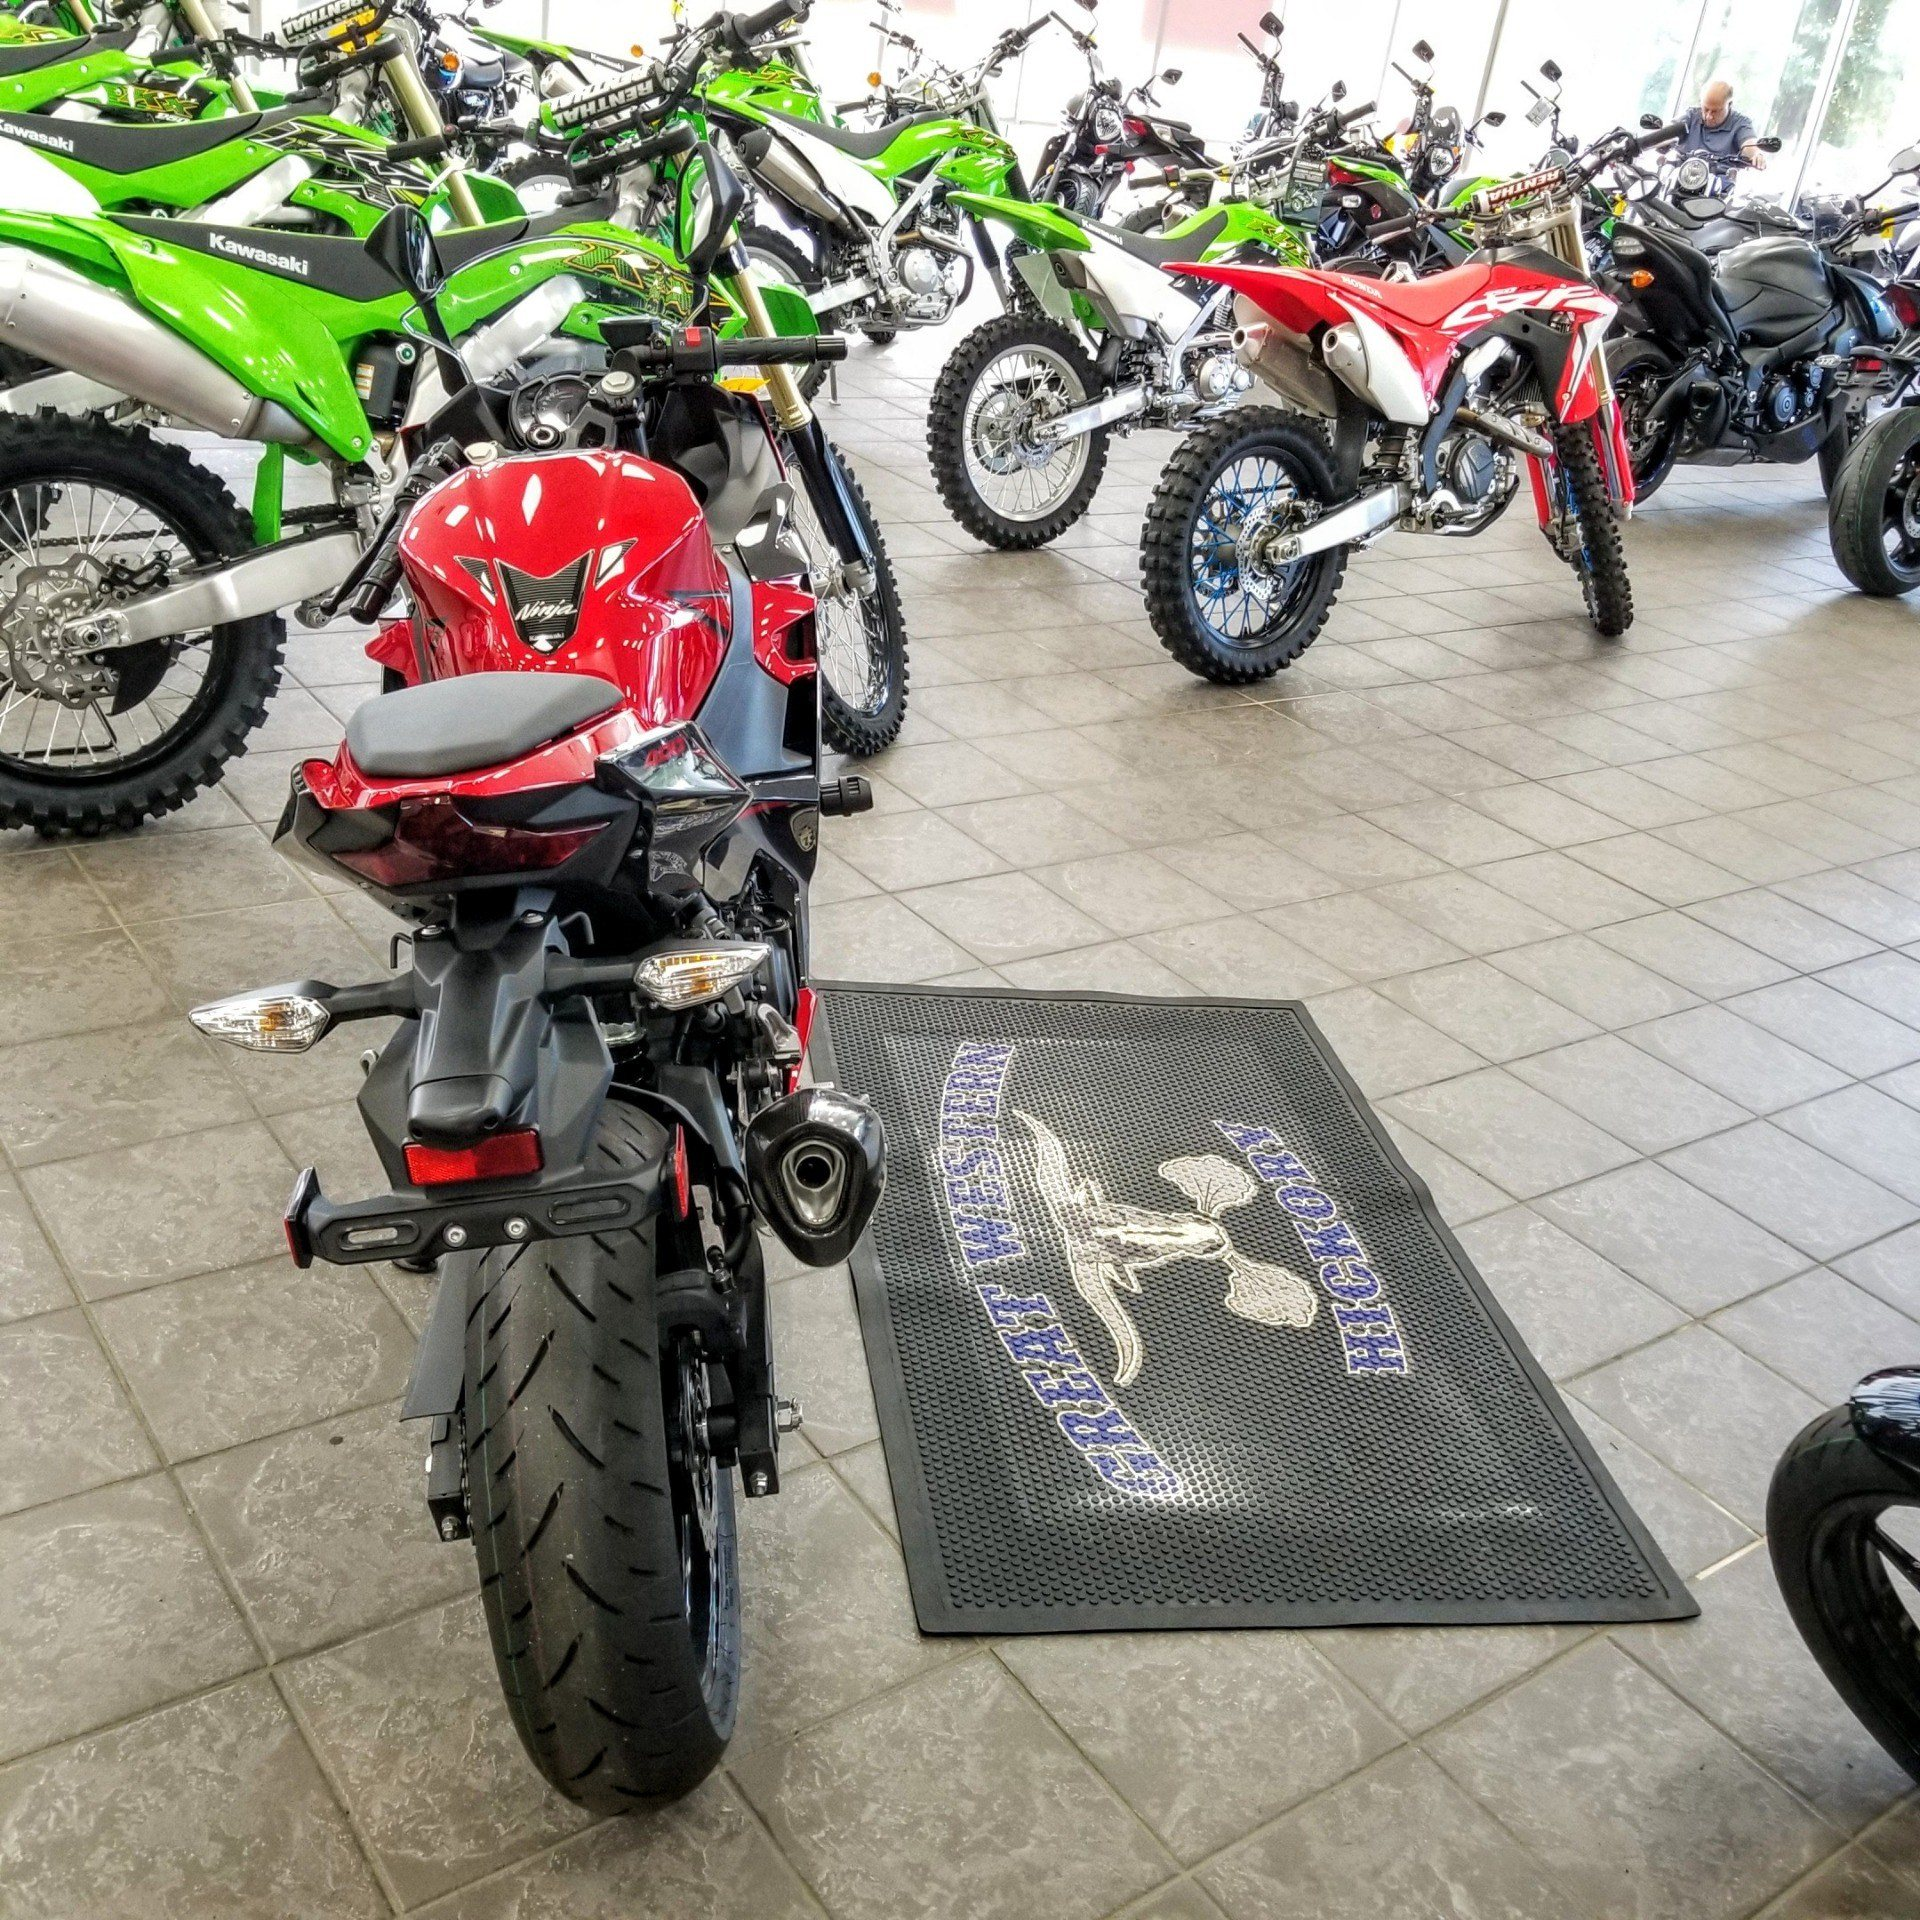 2019 Kawasaki Ninja 400 ABS in Hickory, North Carolina - Photo 6